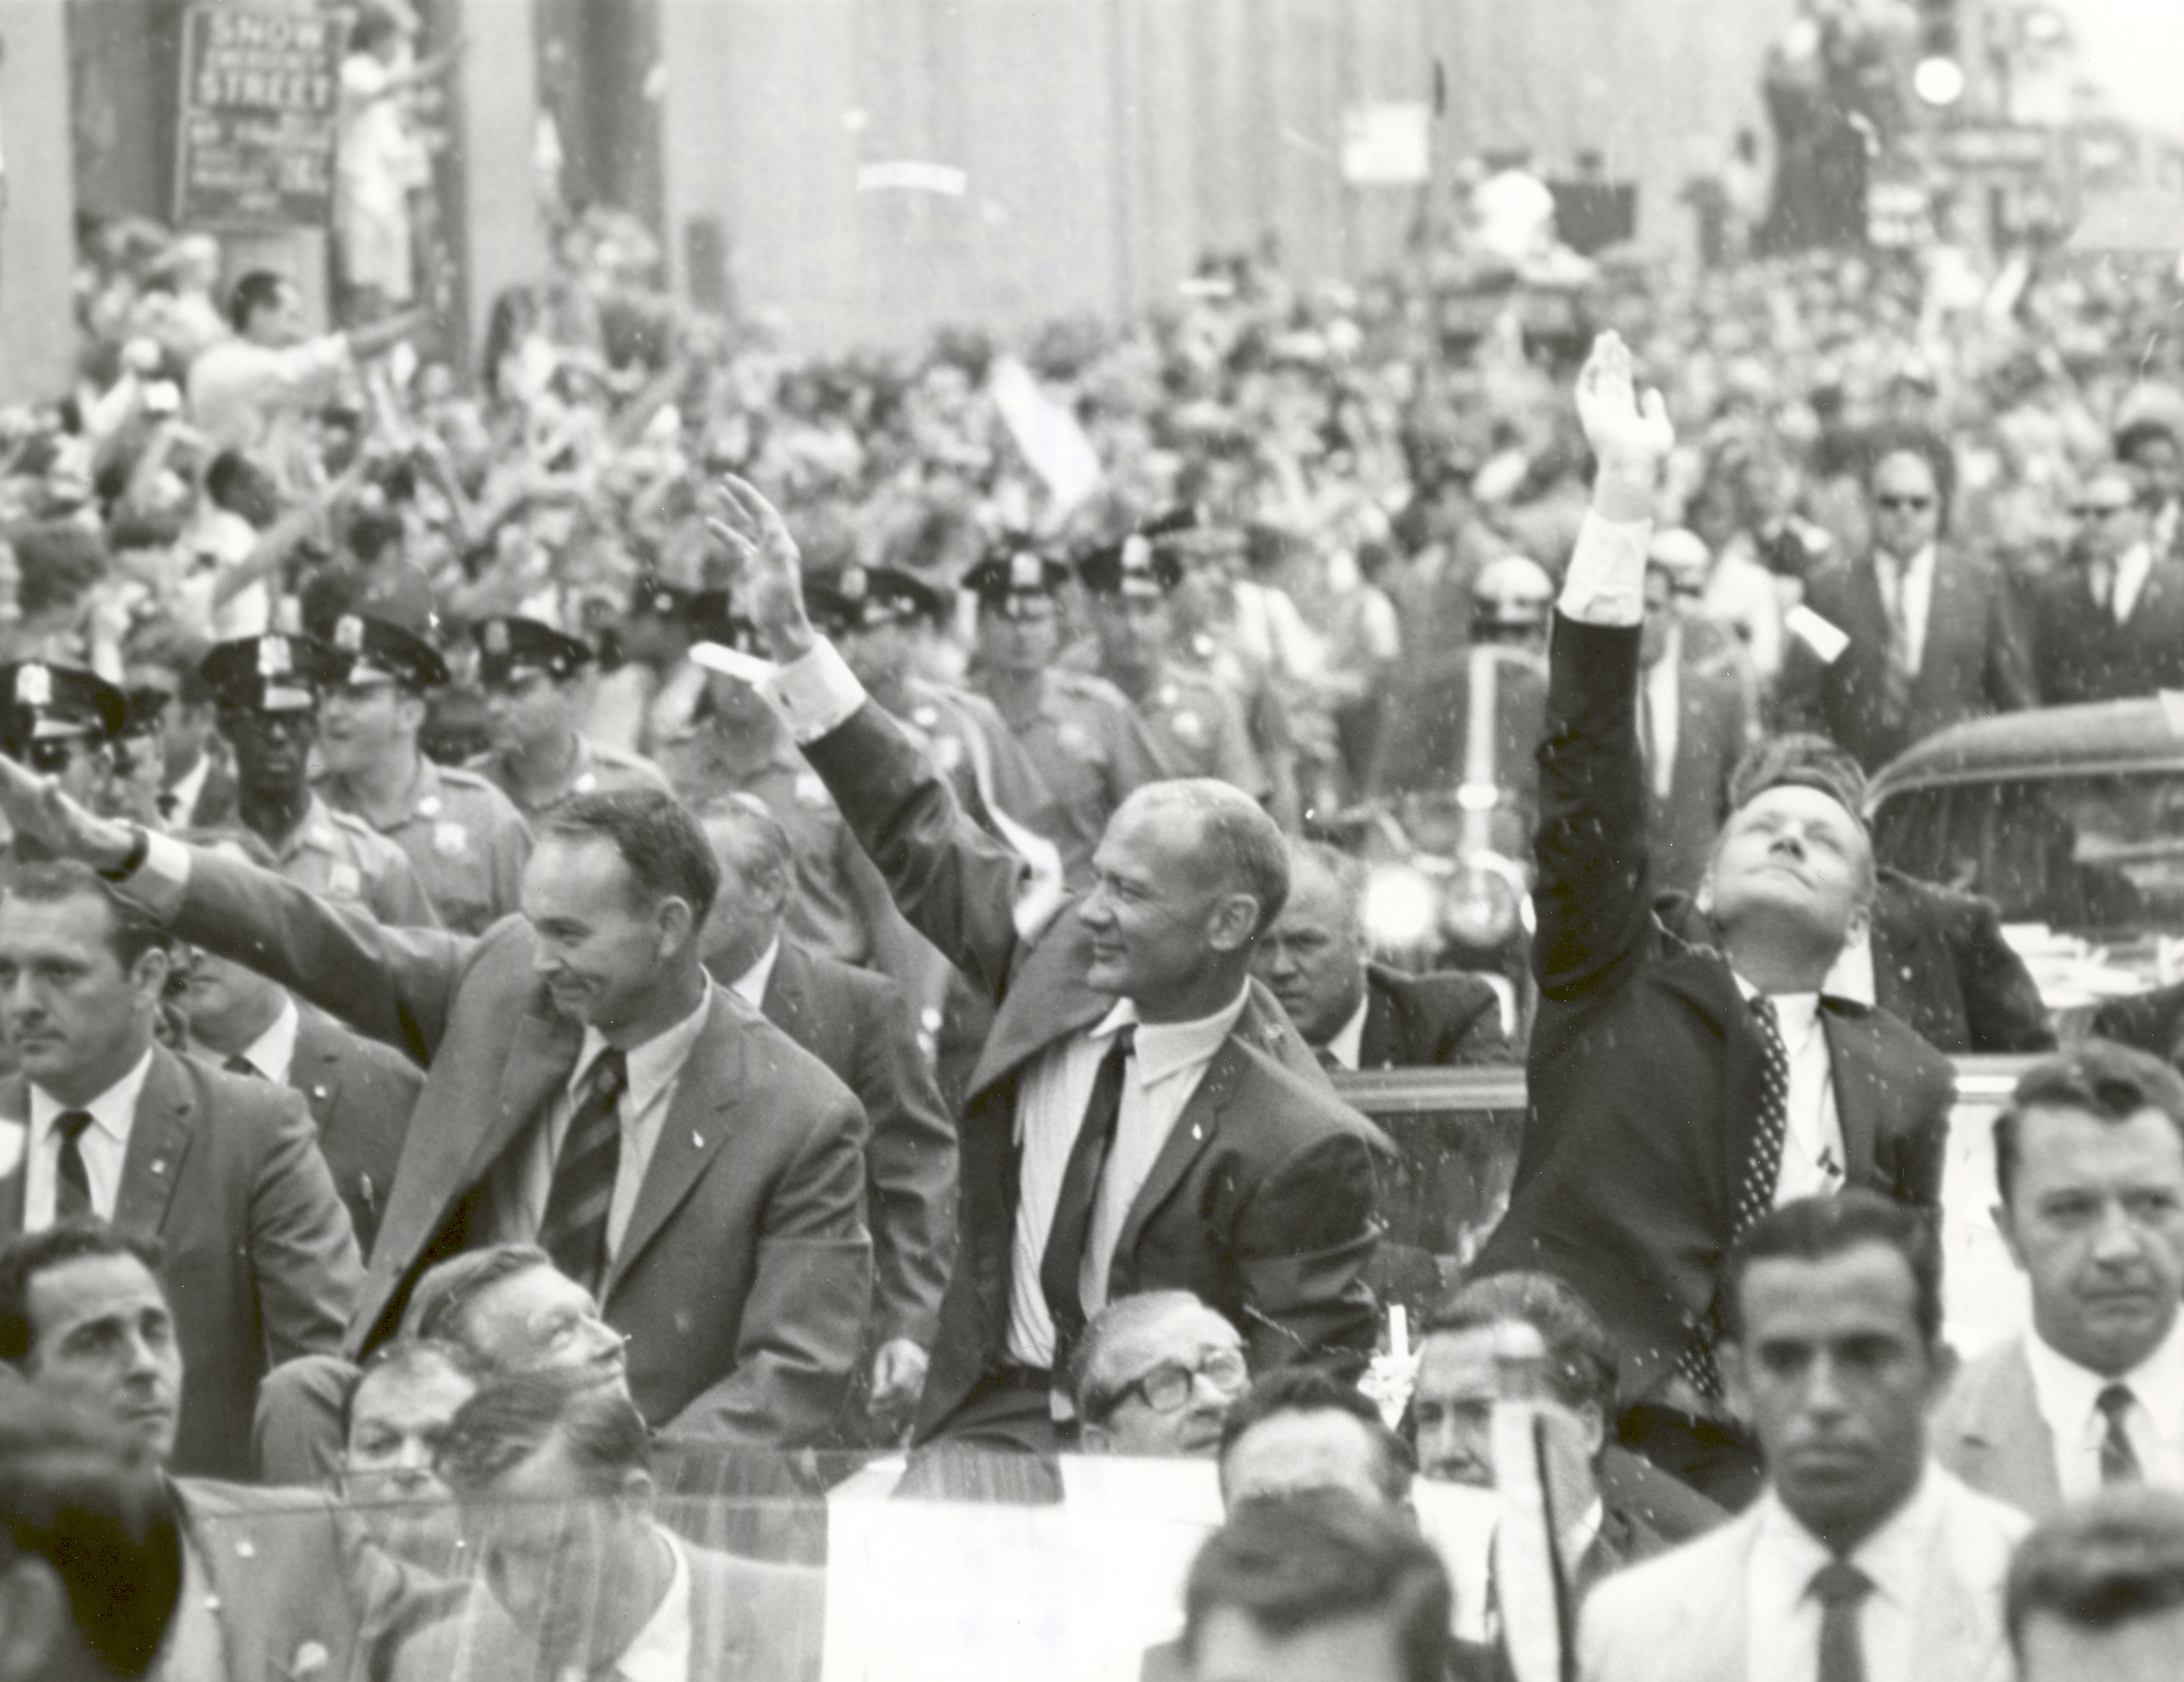 New York City Welcomes the Apollo 11 Astronauts - GPN-2002-000034